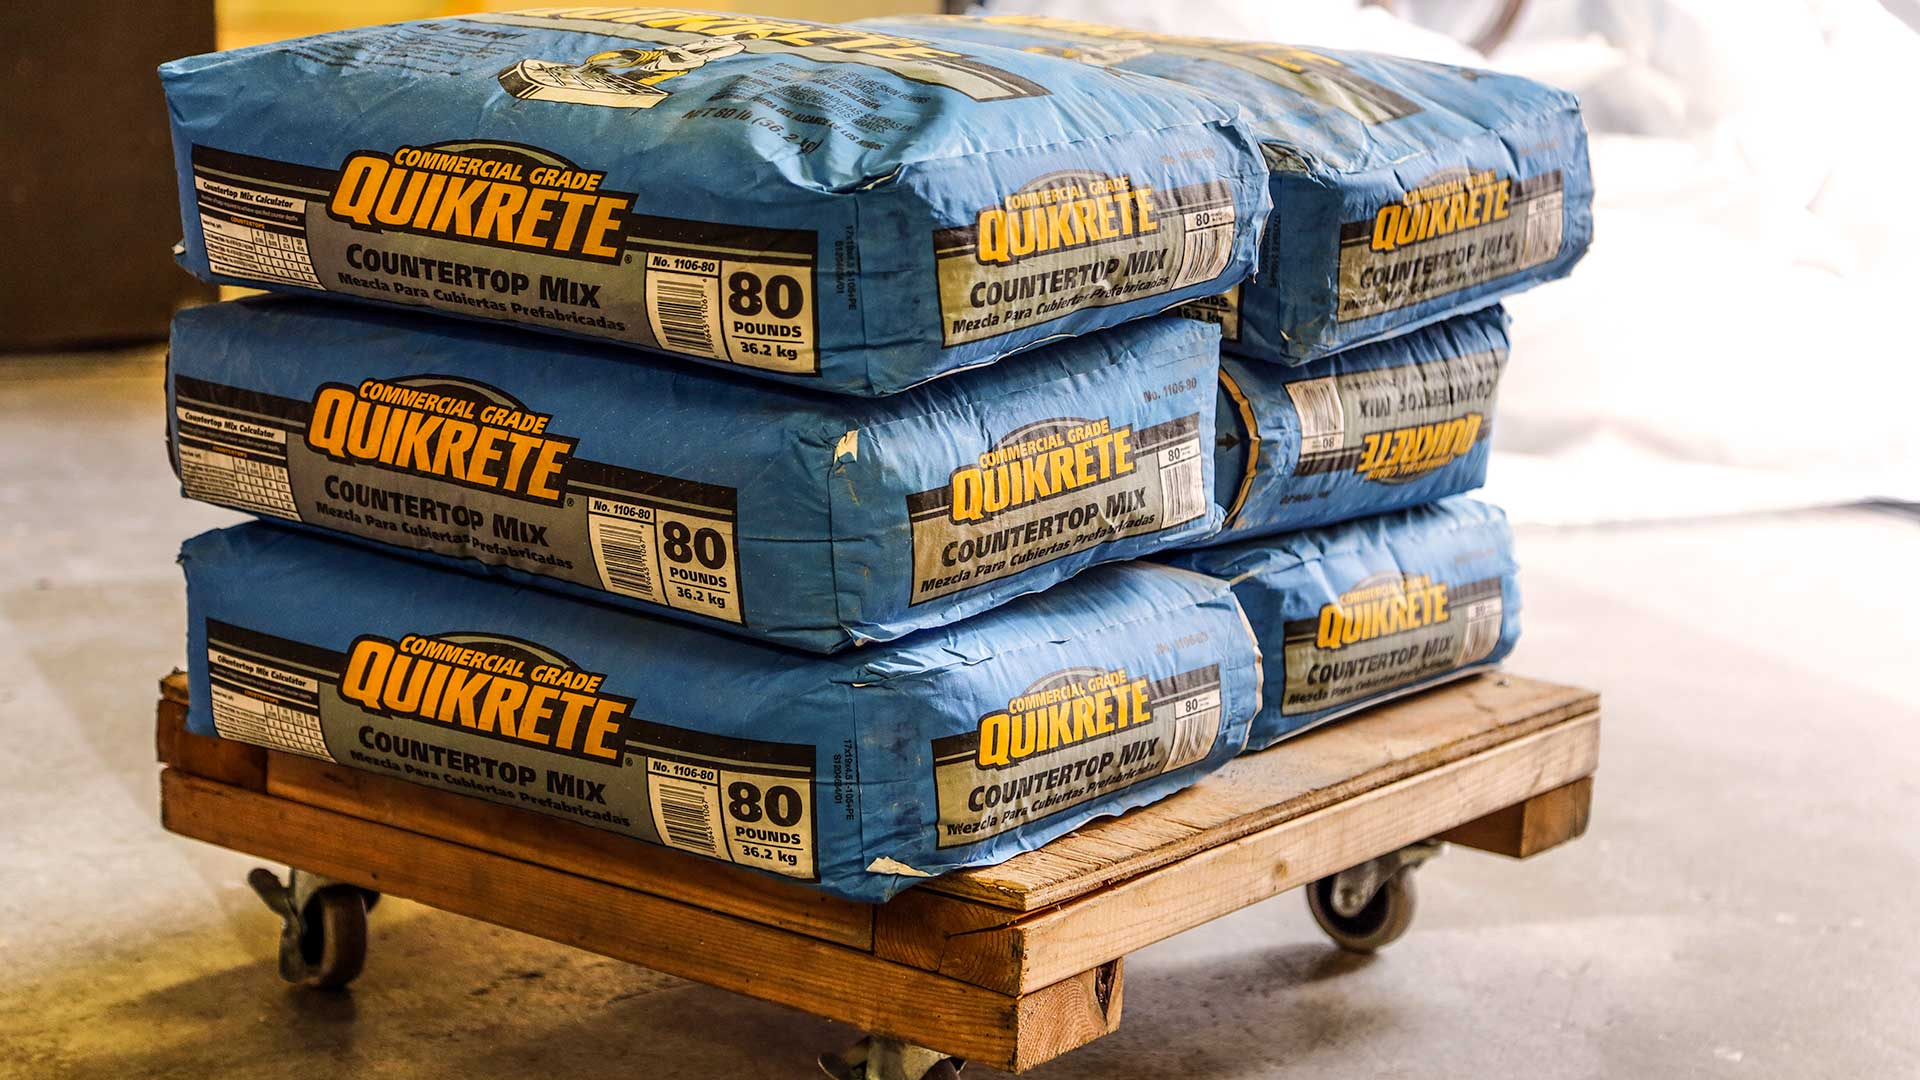 Quikrete Concrete Mix in bags on rollers in storage